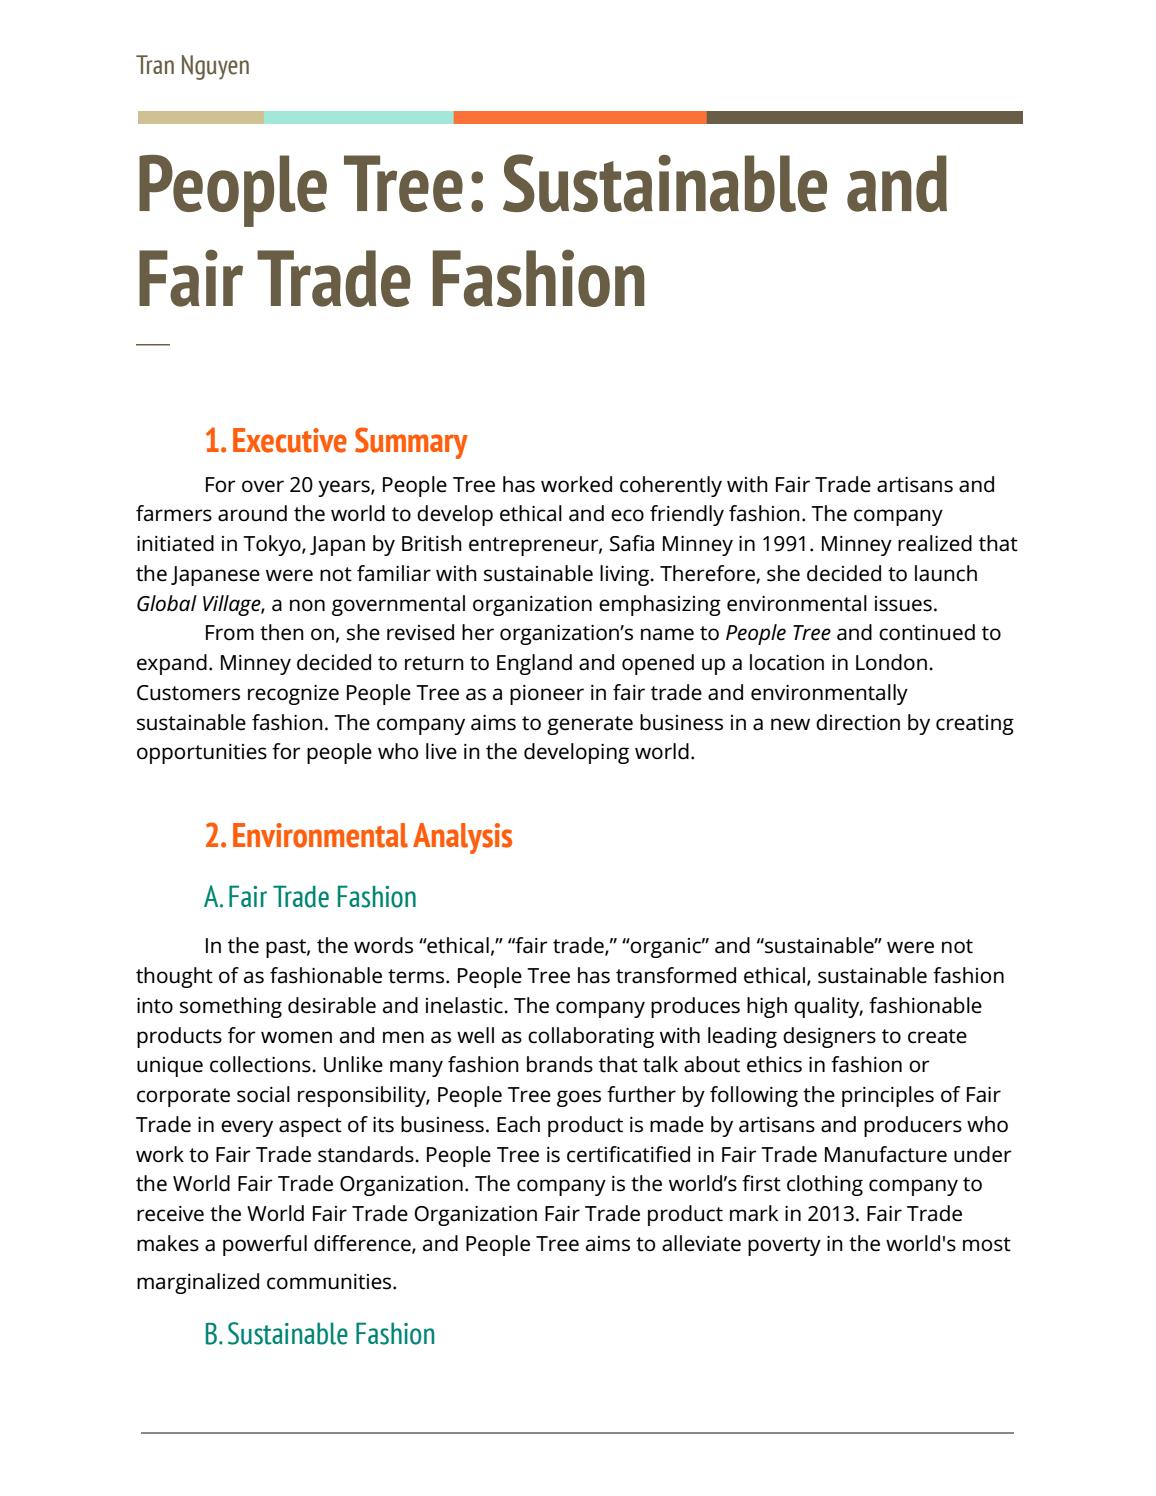 People Tree Sustainable Fair Trade Fashion Marketing Plan By Tran Nguyen Issuu